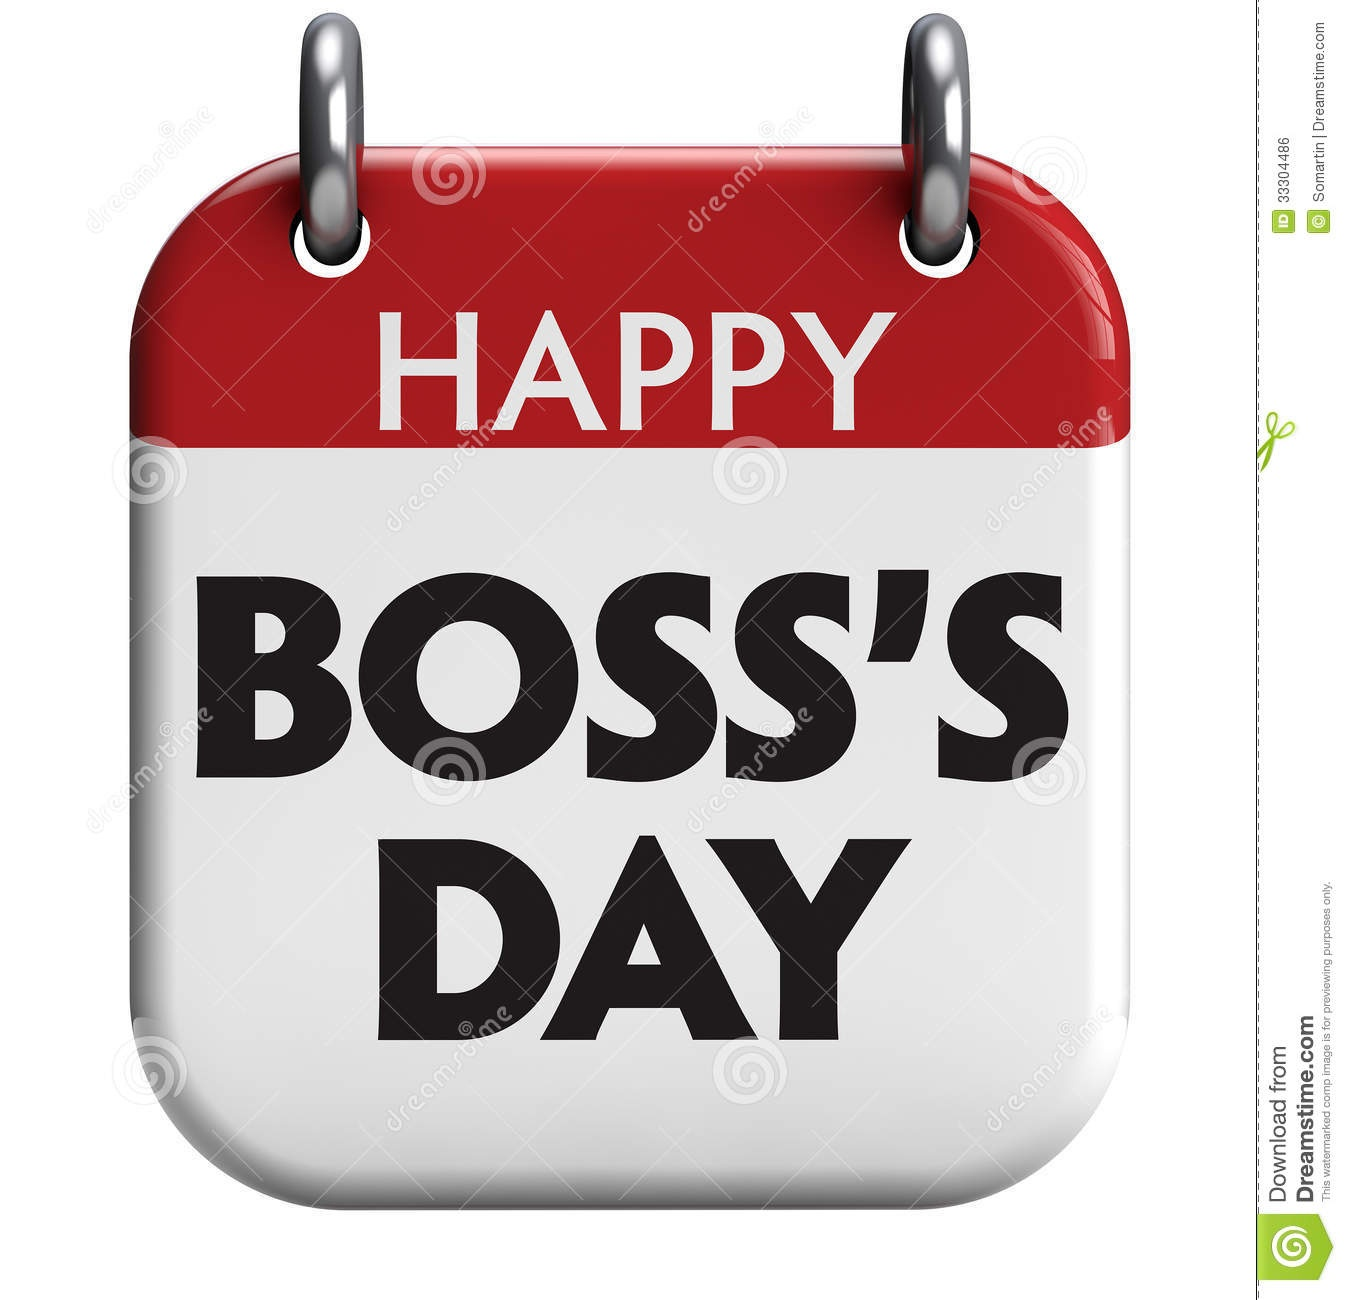 57+ Bosses Day Clip Art | Clipartlook - Free Printable Boss's Day Cards